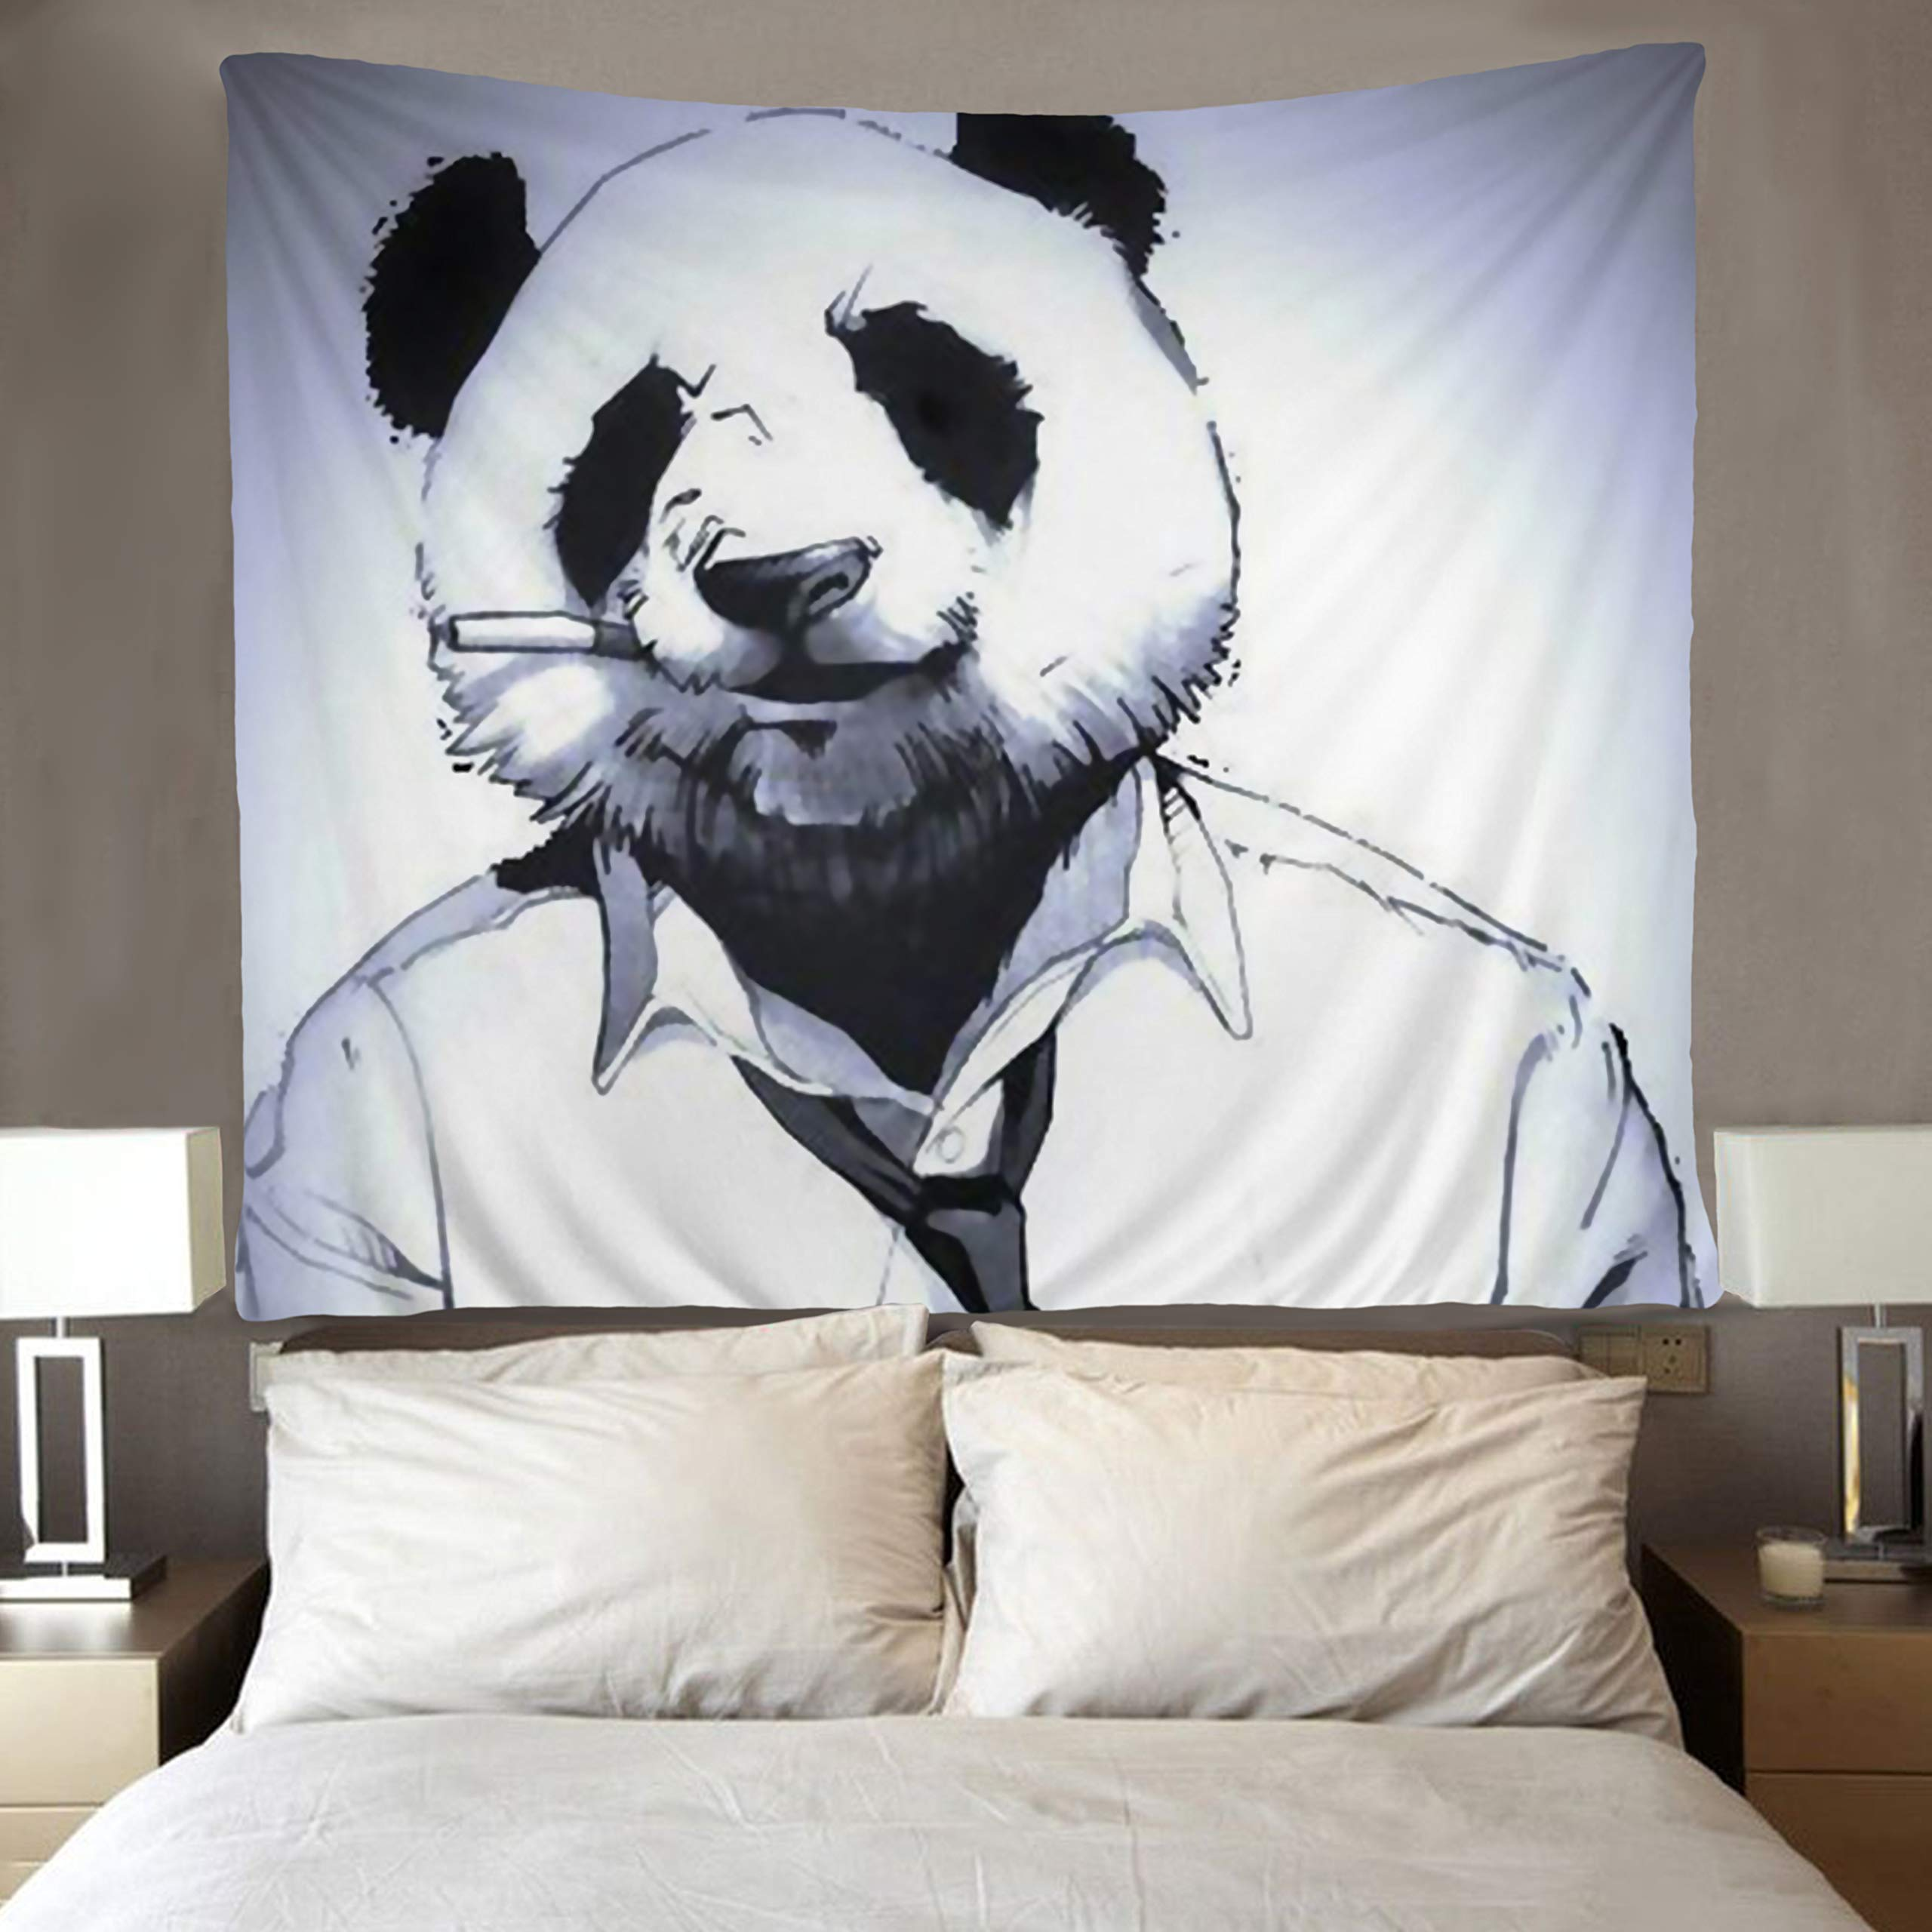 SARA NELL Funny Panda Tapestry Art Wall Hippie Art Cool Panda Tapestries Wall Hanging Throw Tablecloth 50X60 Inches for Bedroom Living Room Dorm Room